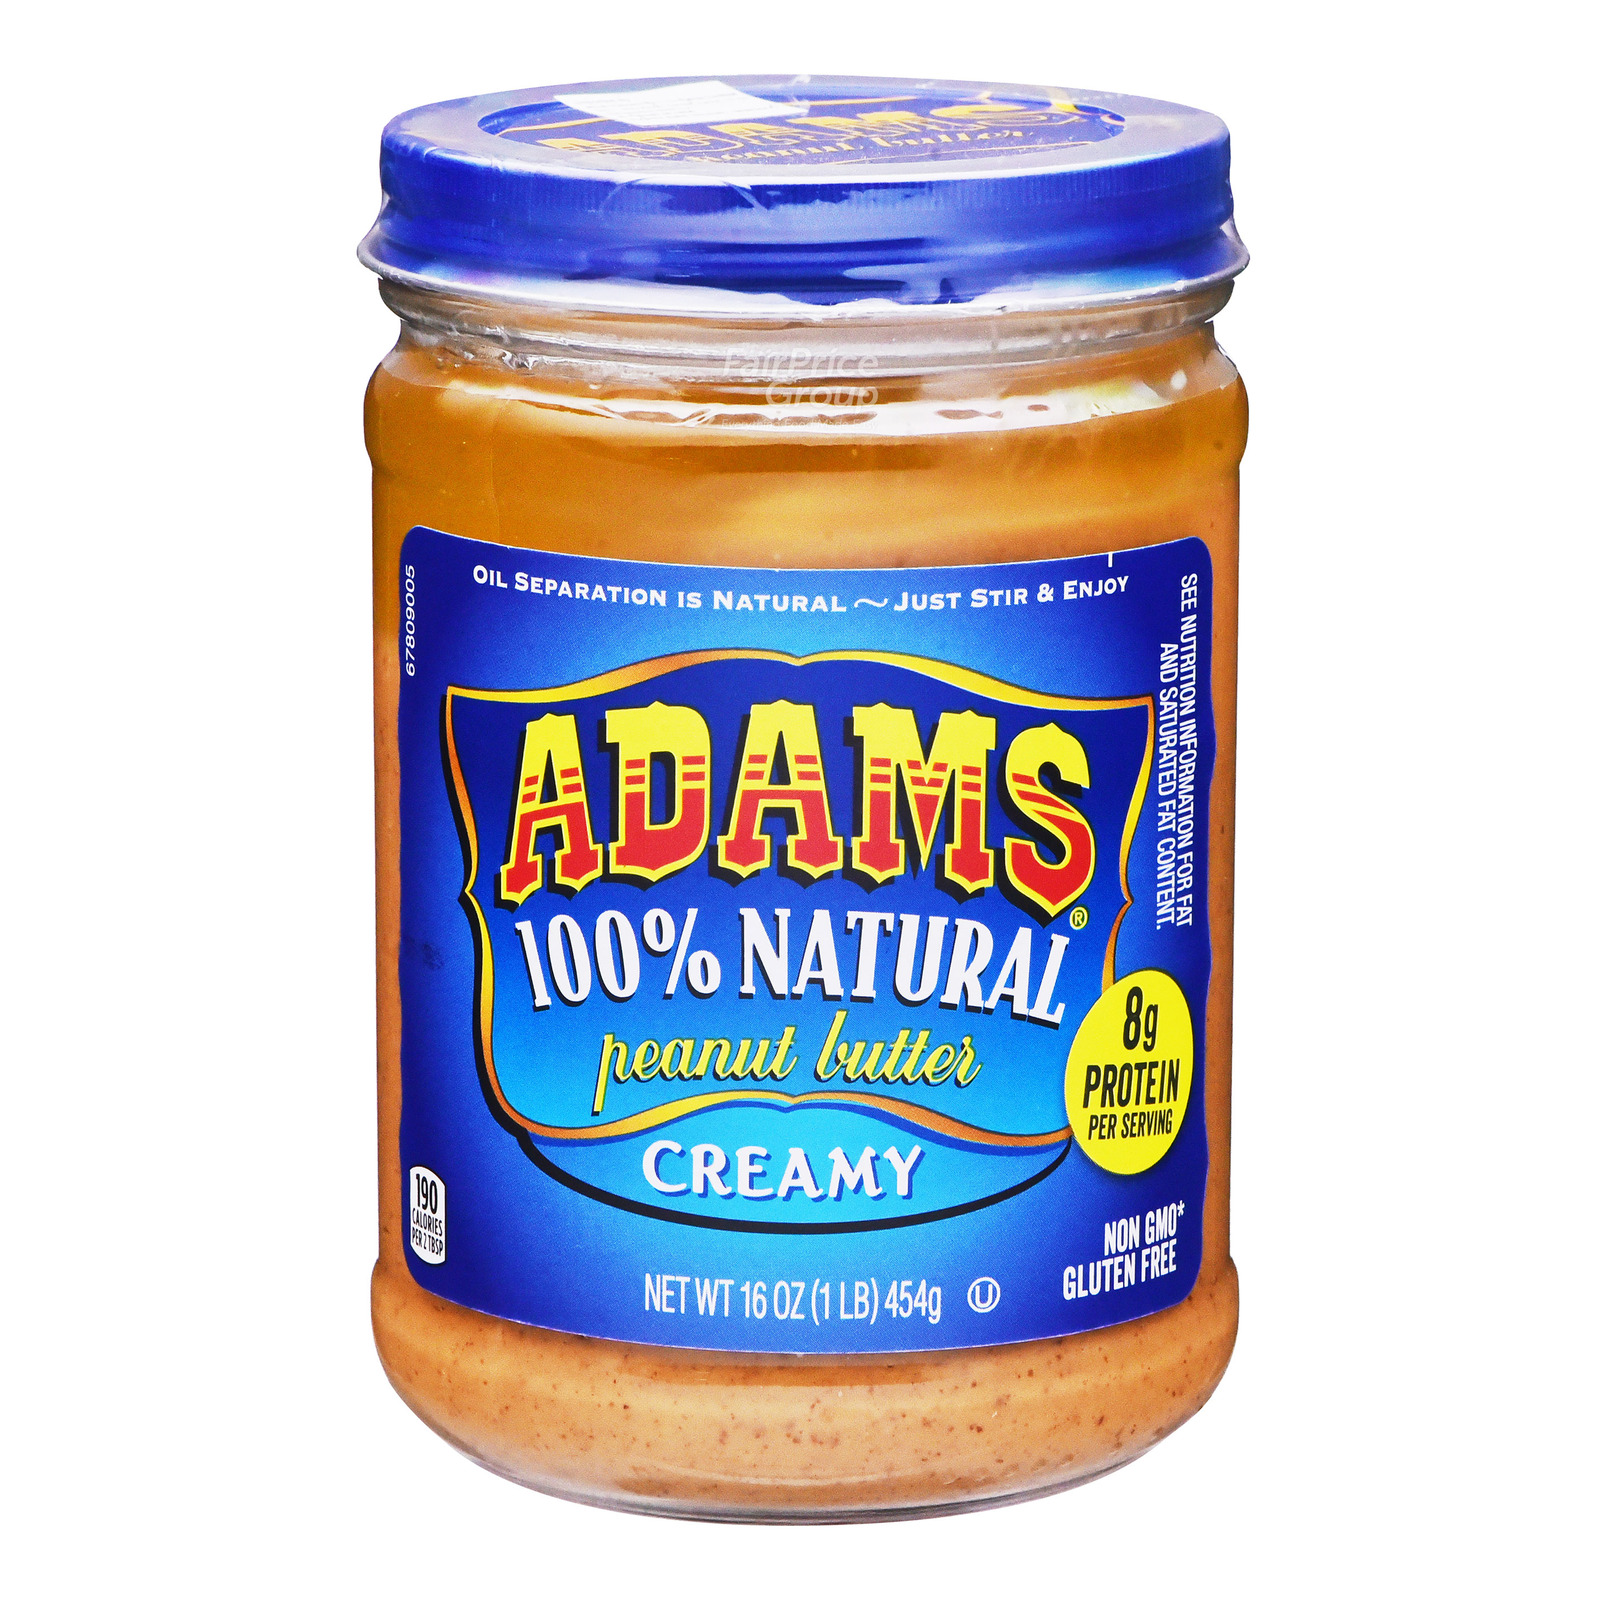 Adams 100% Natural Peanut Butter - Creamy